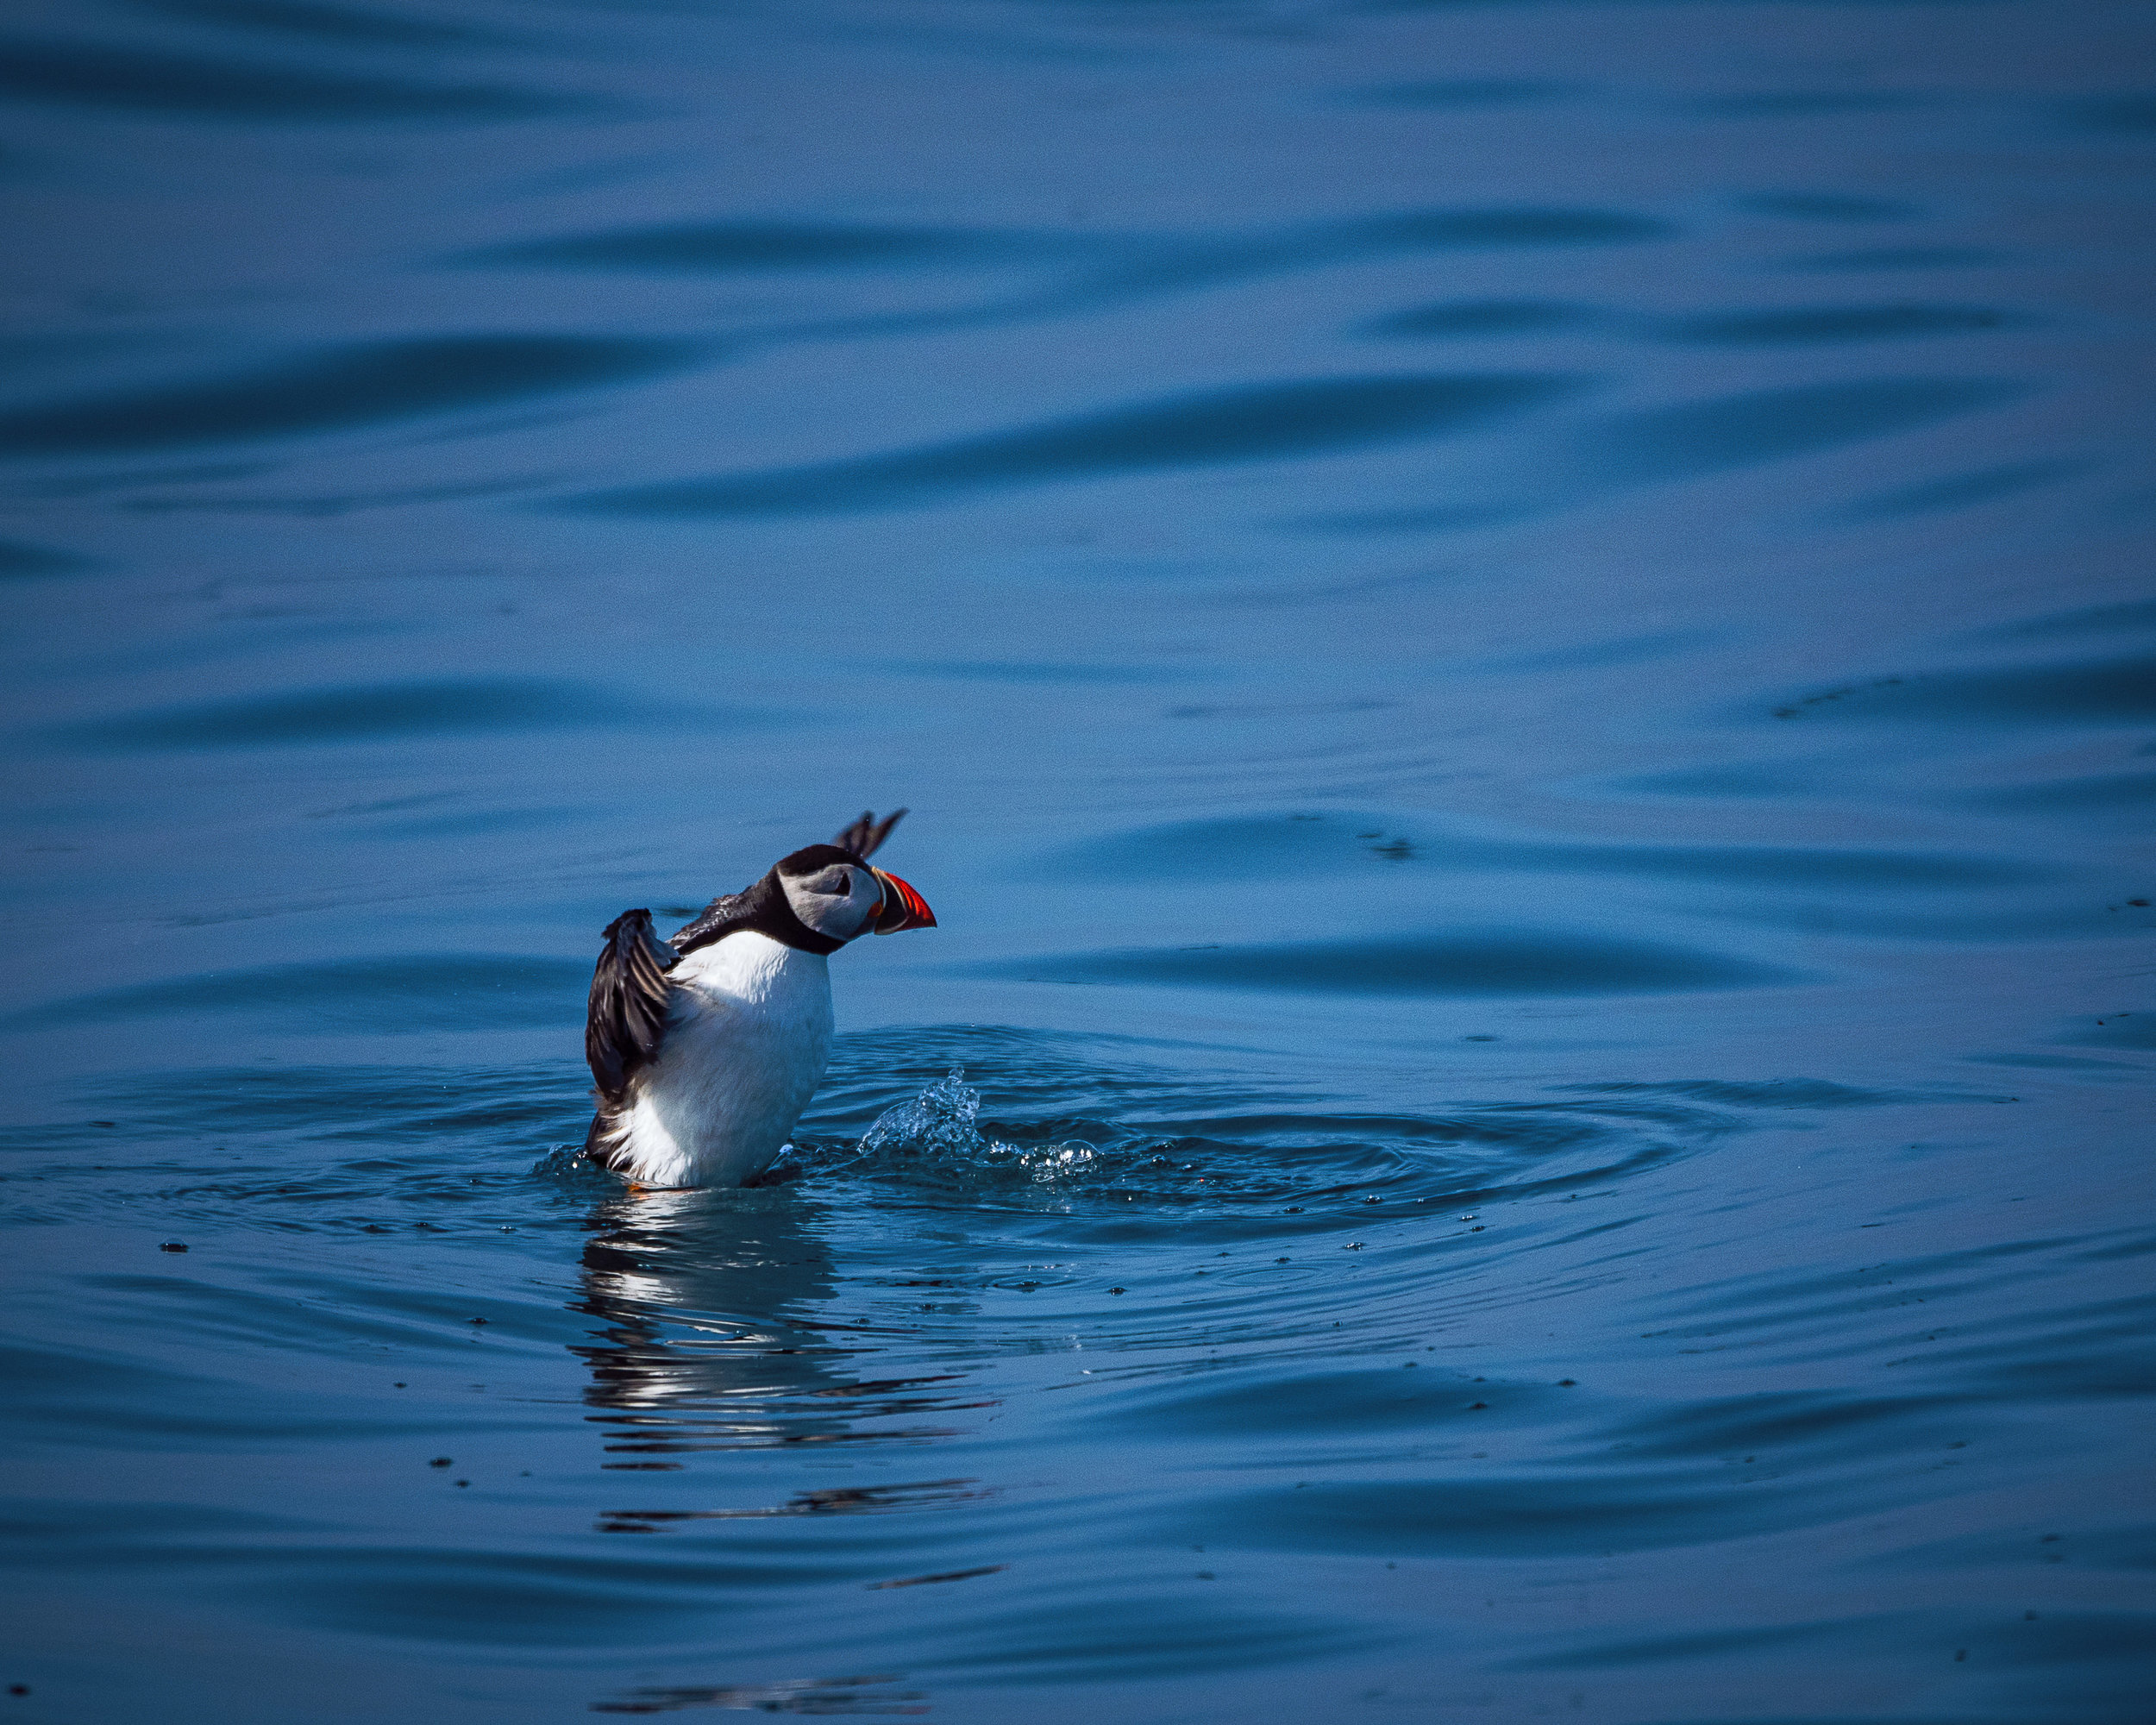 A puffin prepares to take flight